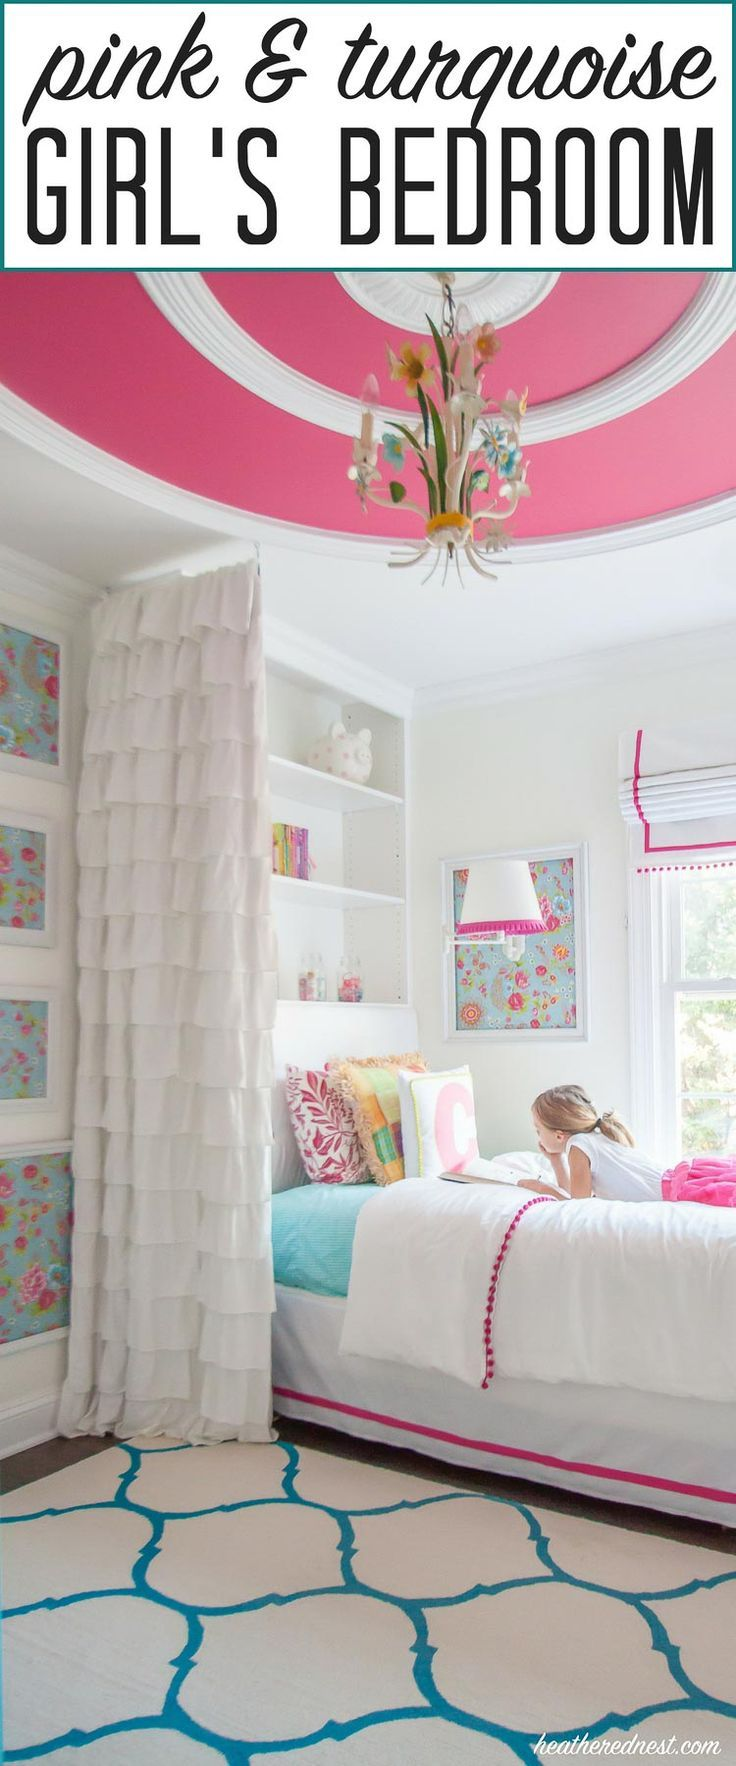 Turquoise And Pink Bedroom Reveal From Heatherednest.com LOVE The DIY  Bedding